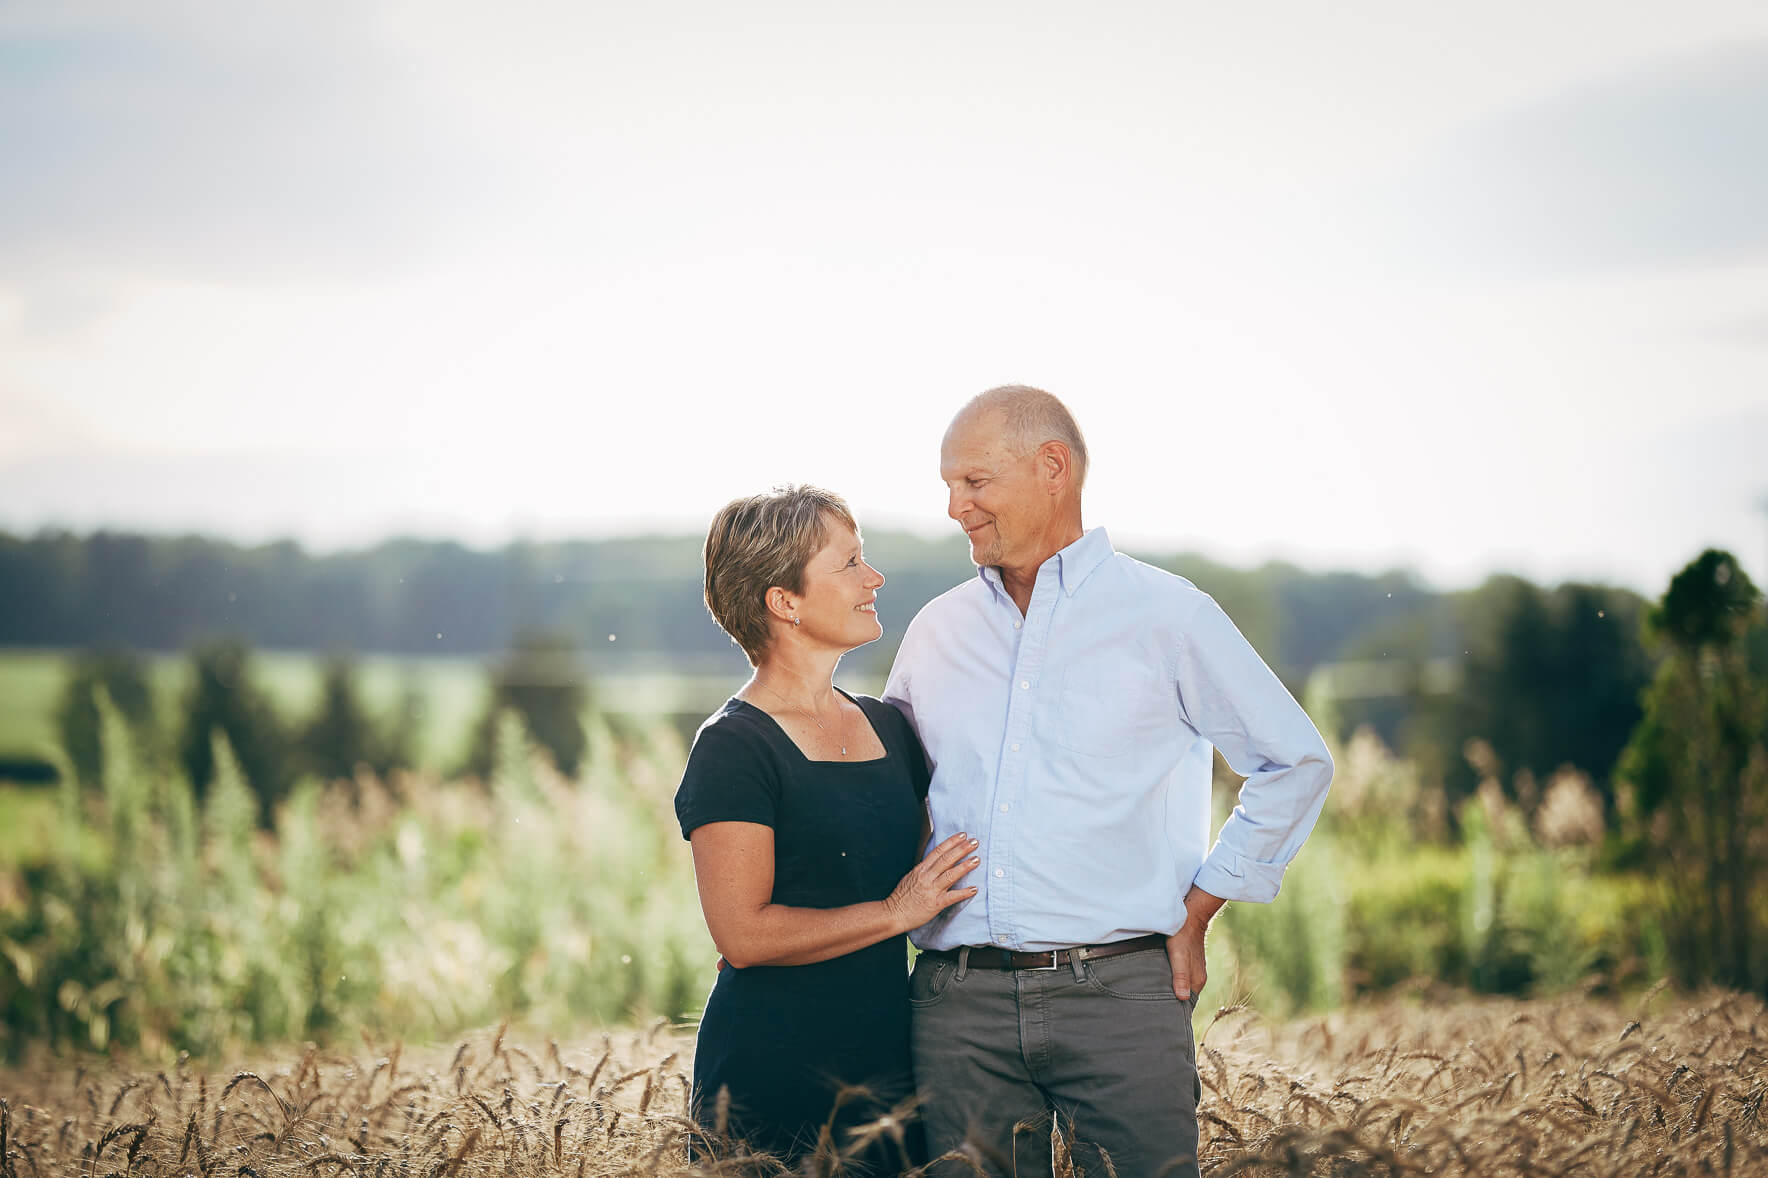 Husband and wife standing in a field of wheat in a backlit photo